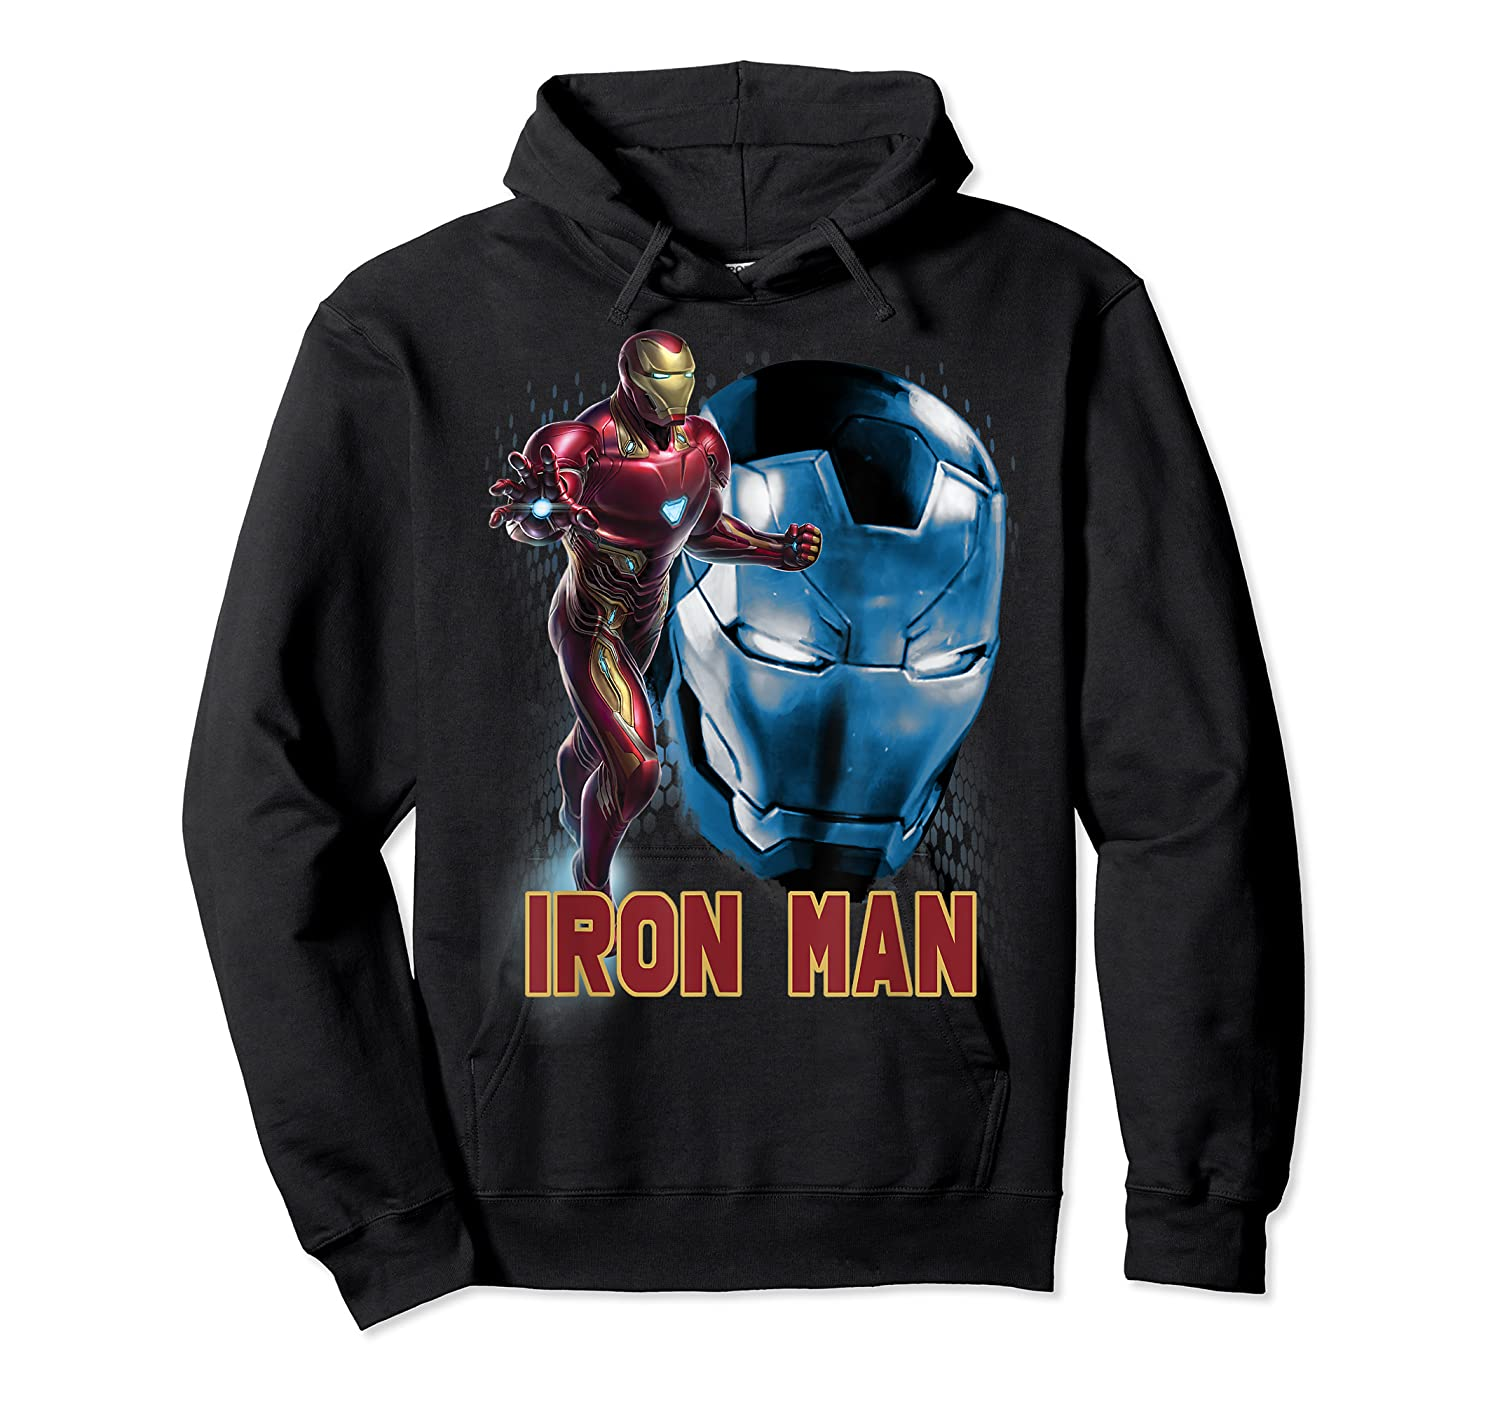 Avengers Endgame Iron Man Side Profile Graphic Shirts Unisex Pullover Hoodie